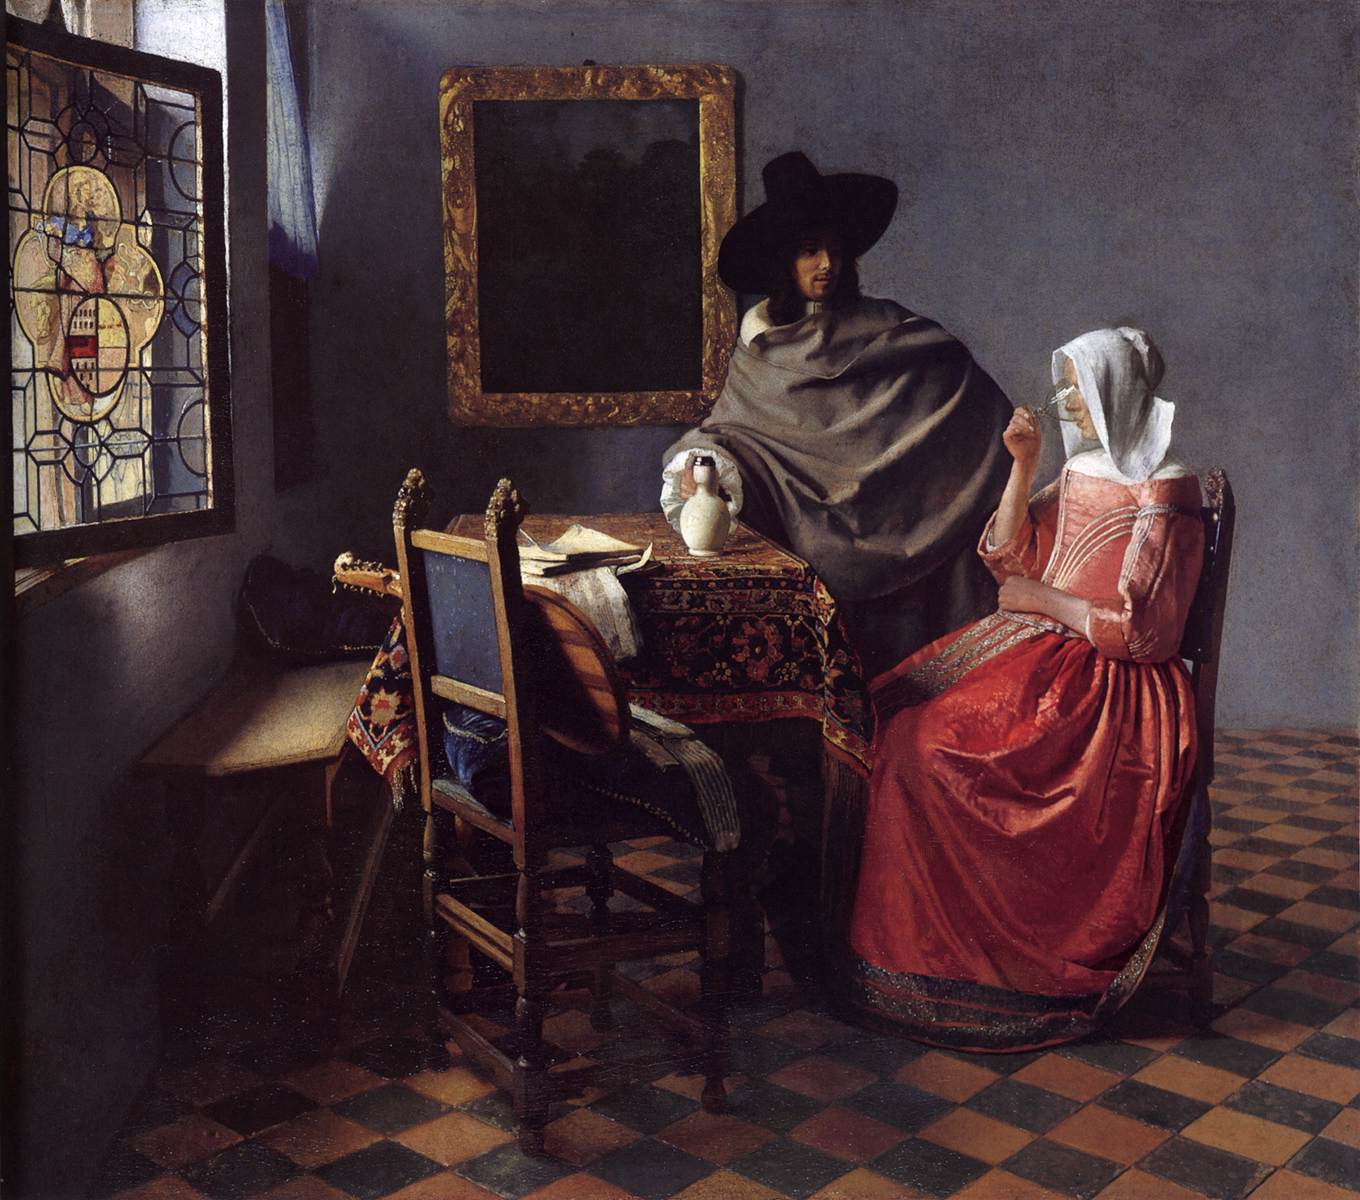 Johannes Vermeer - A Lady Drinking and a Gentleman // commons.wikimedia.org